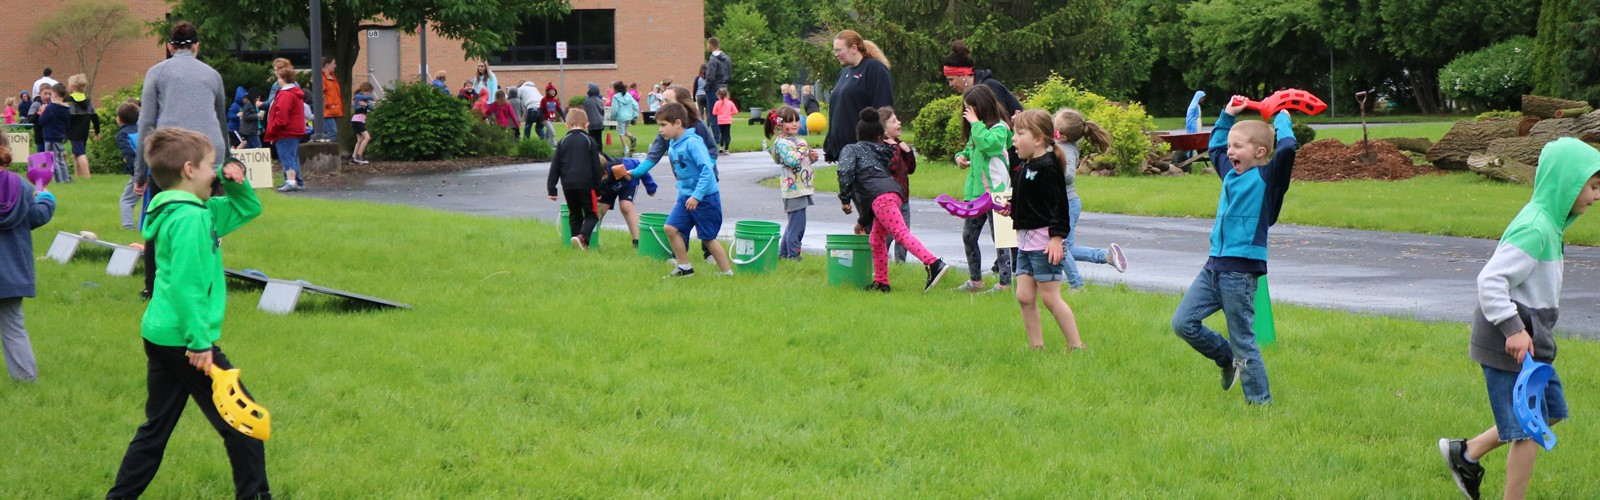 Students participating in various stations during field day